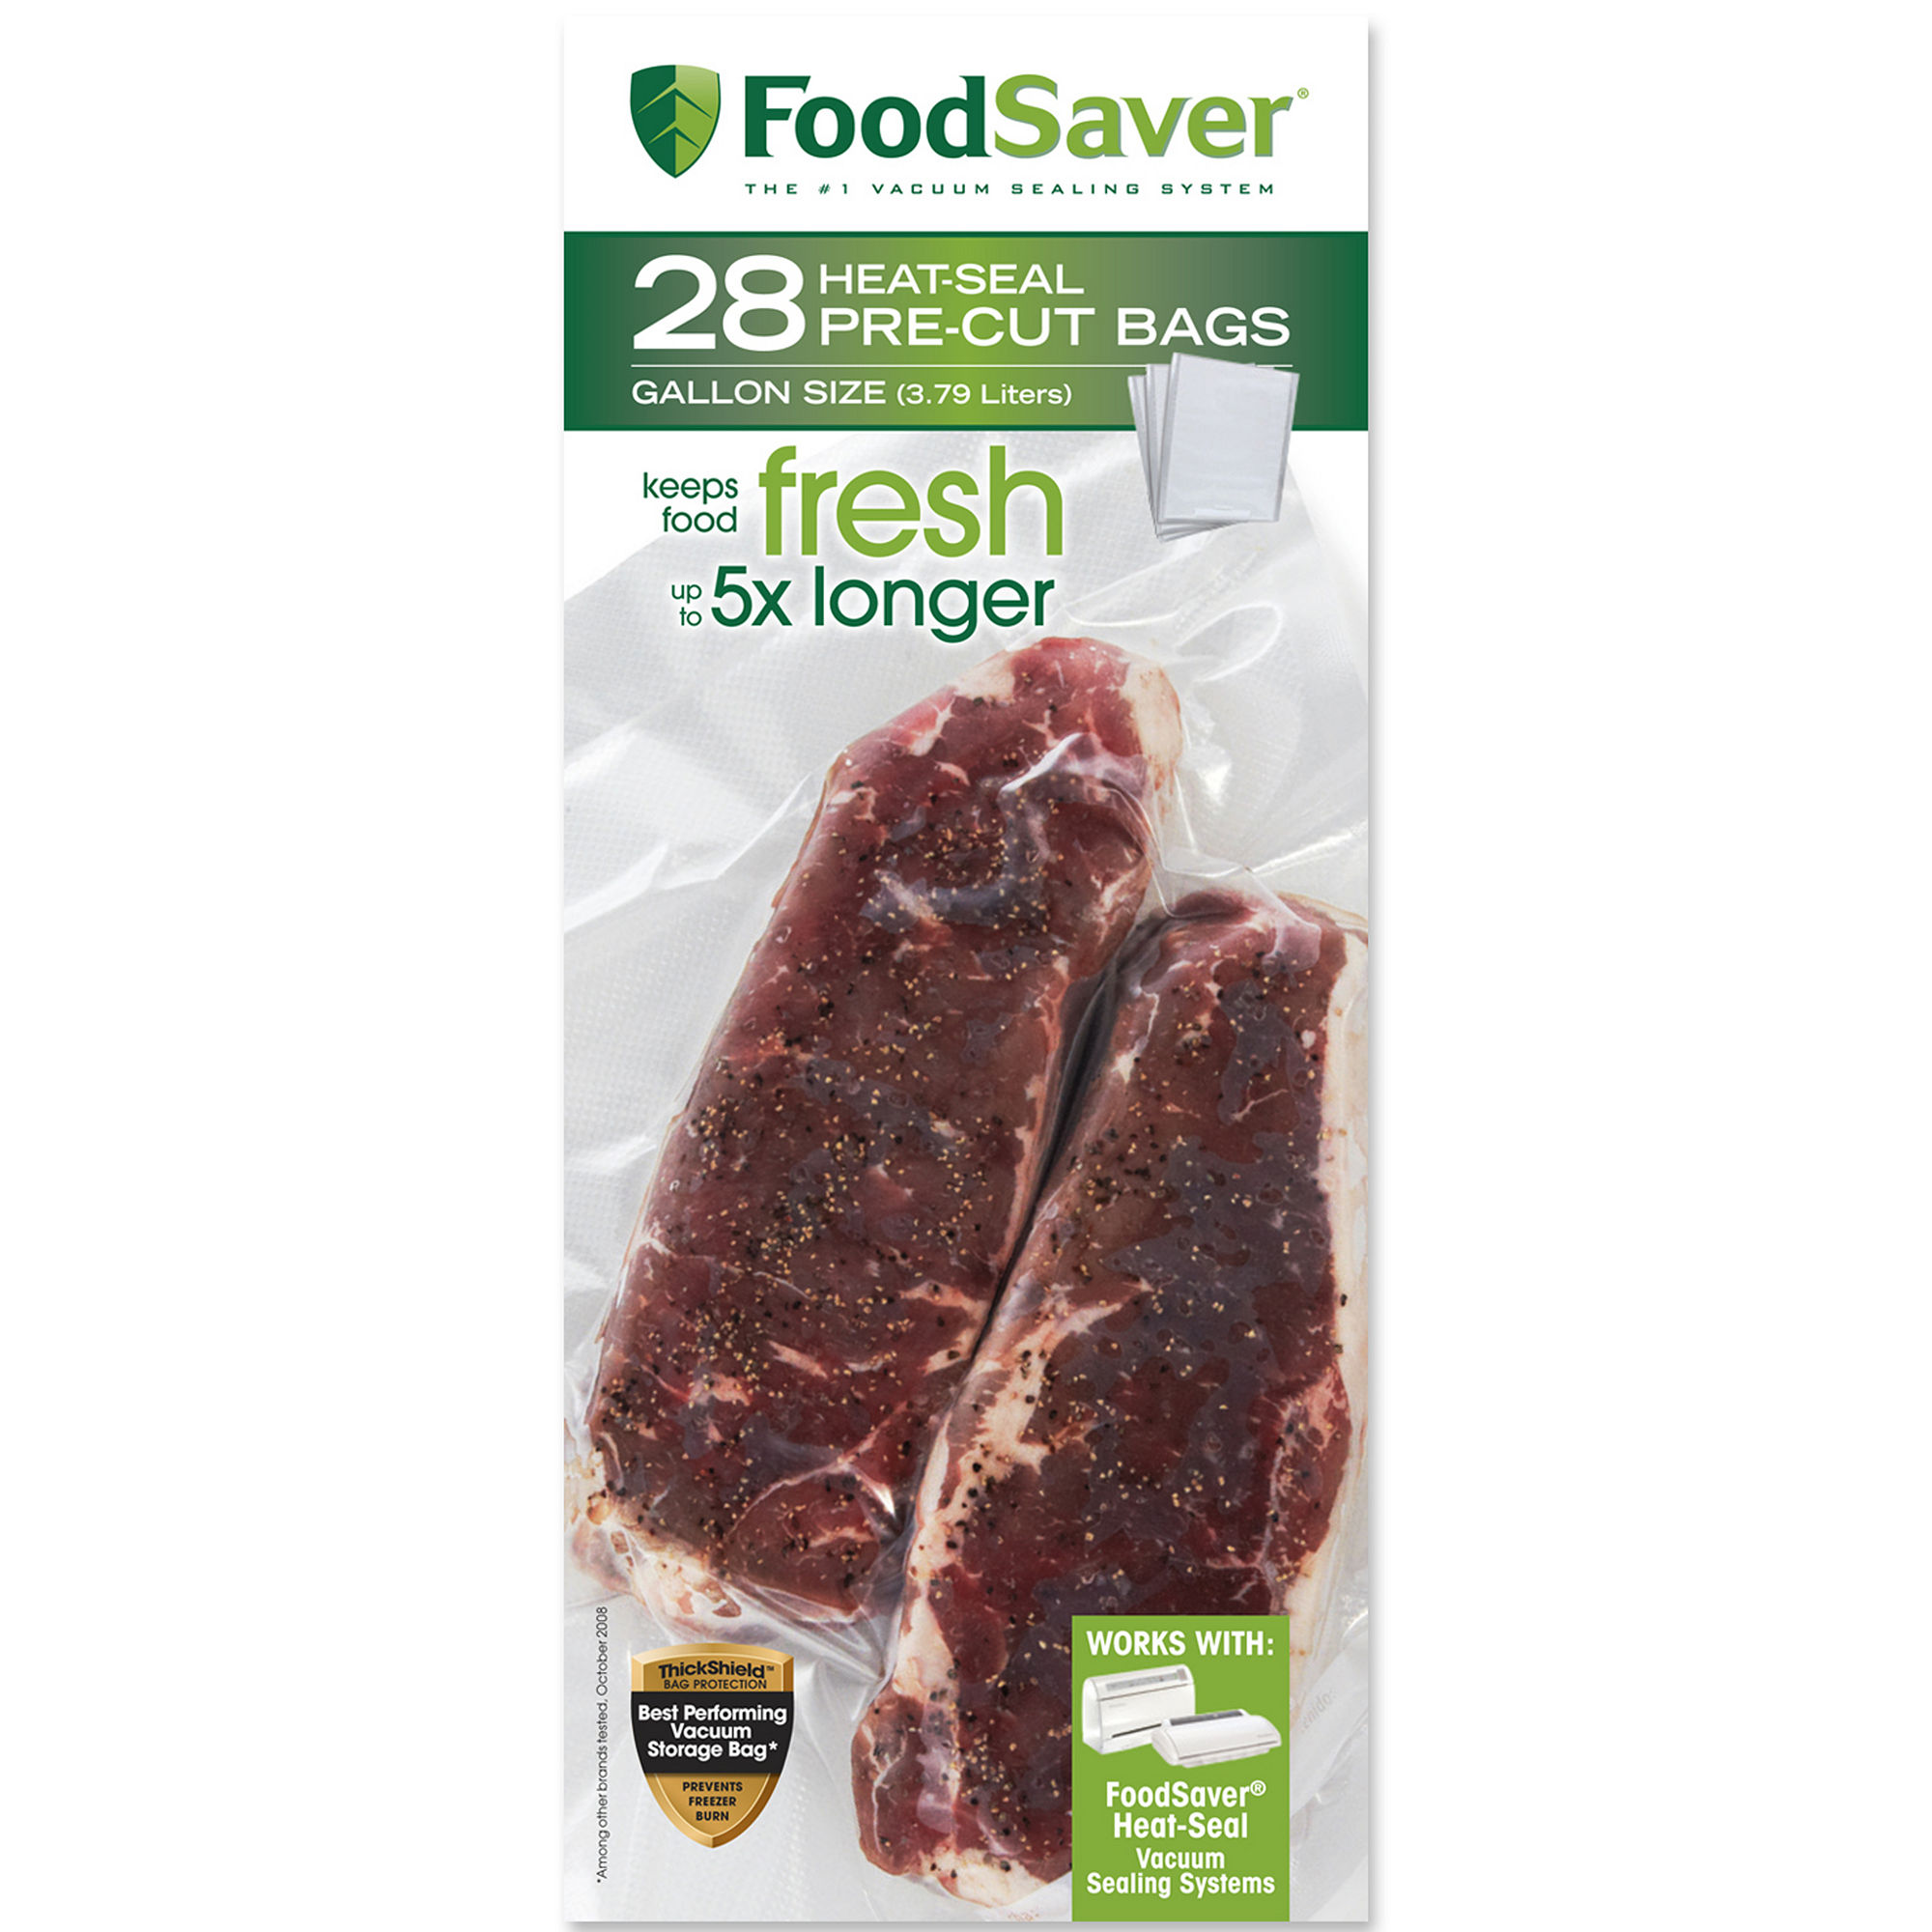 FoodSaver 28 Gallon-Size Bags